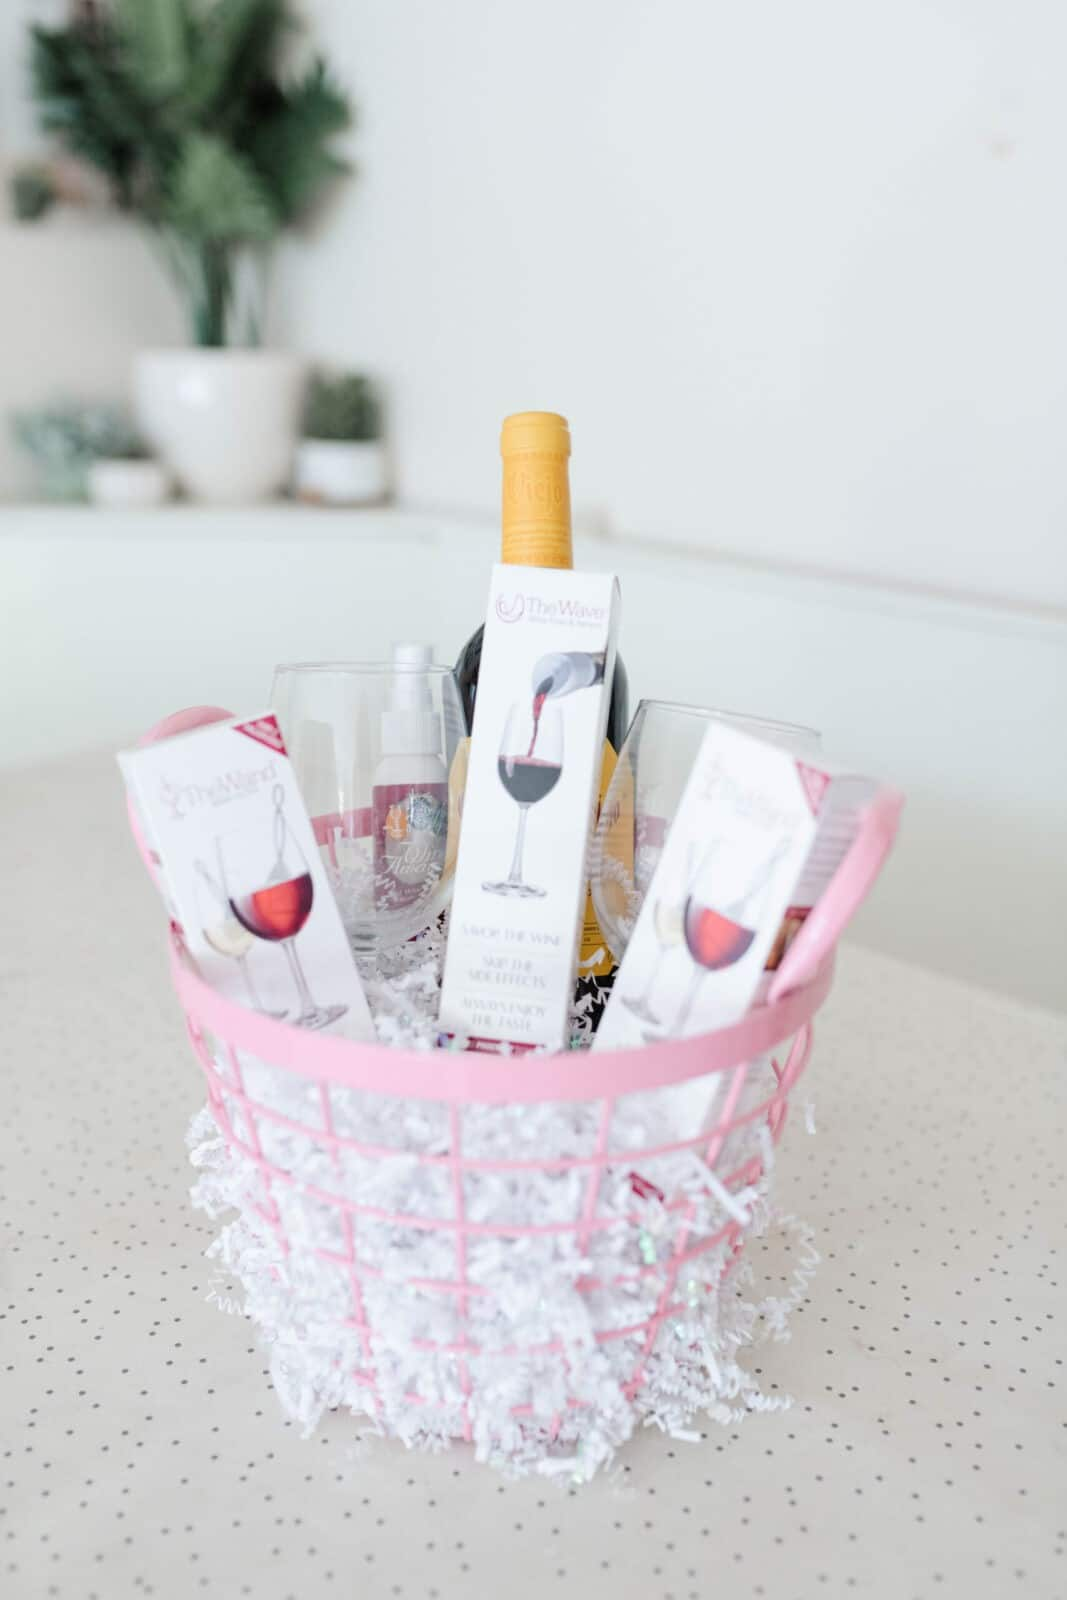 EASTER BASKET GIFT IDEAS FOR WINE LOVERS